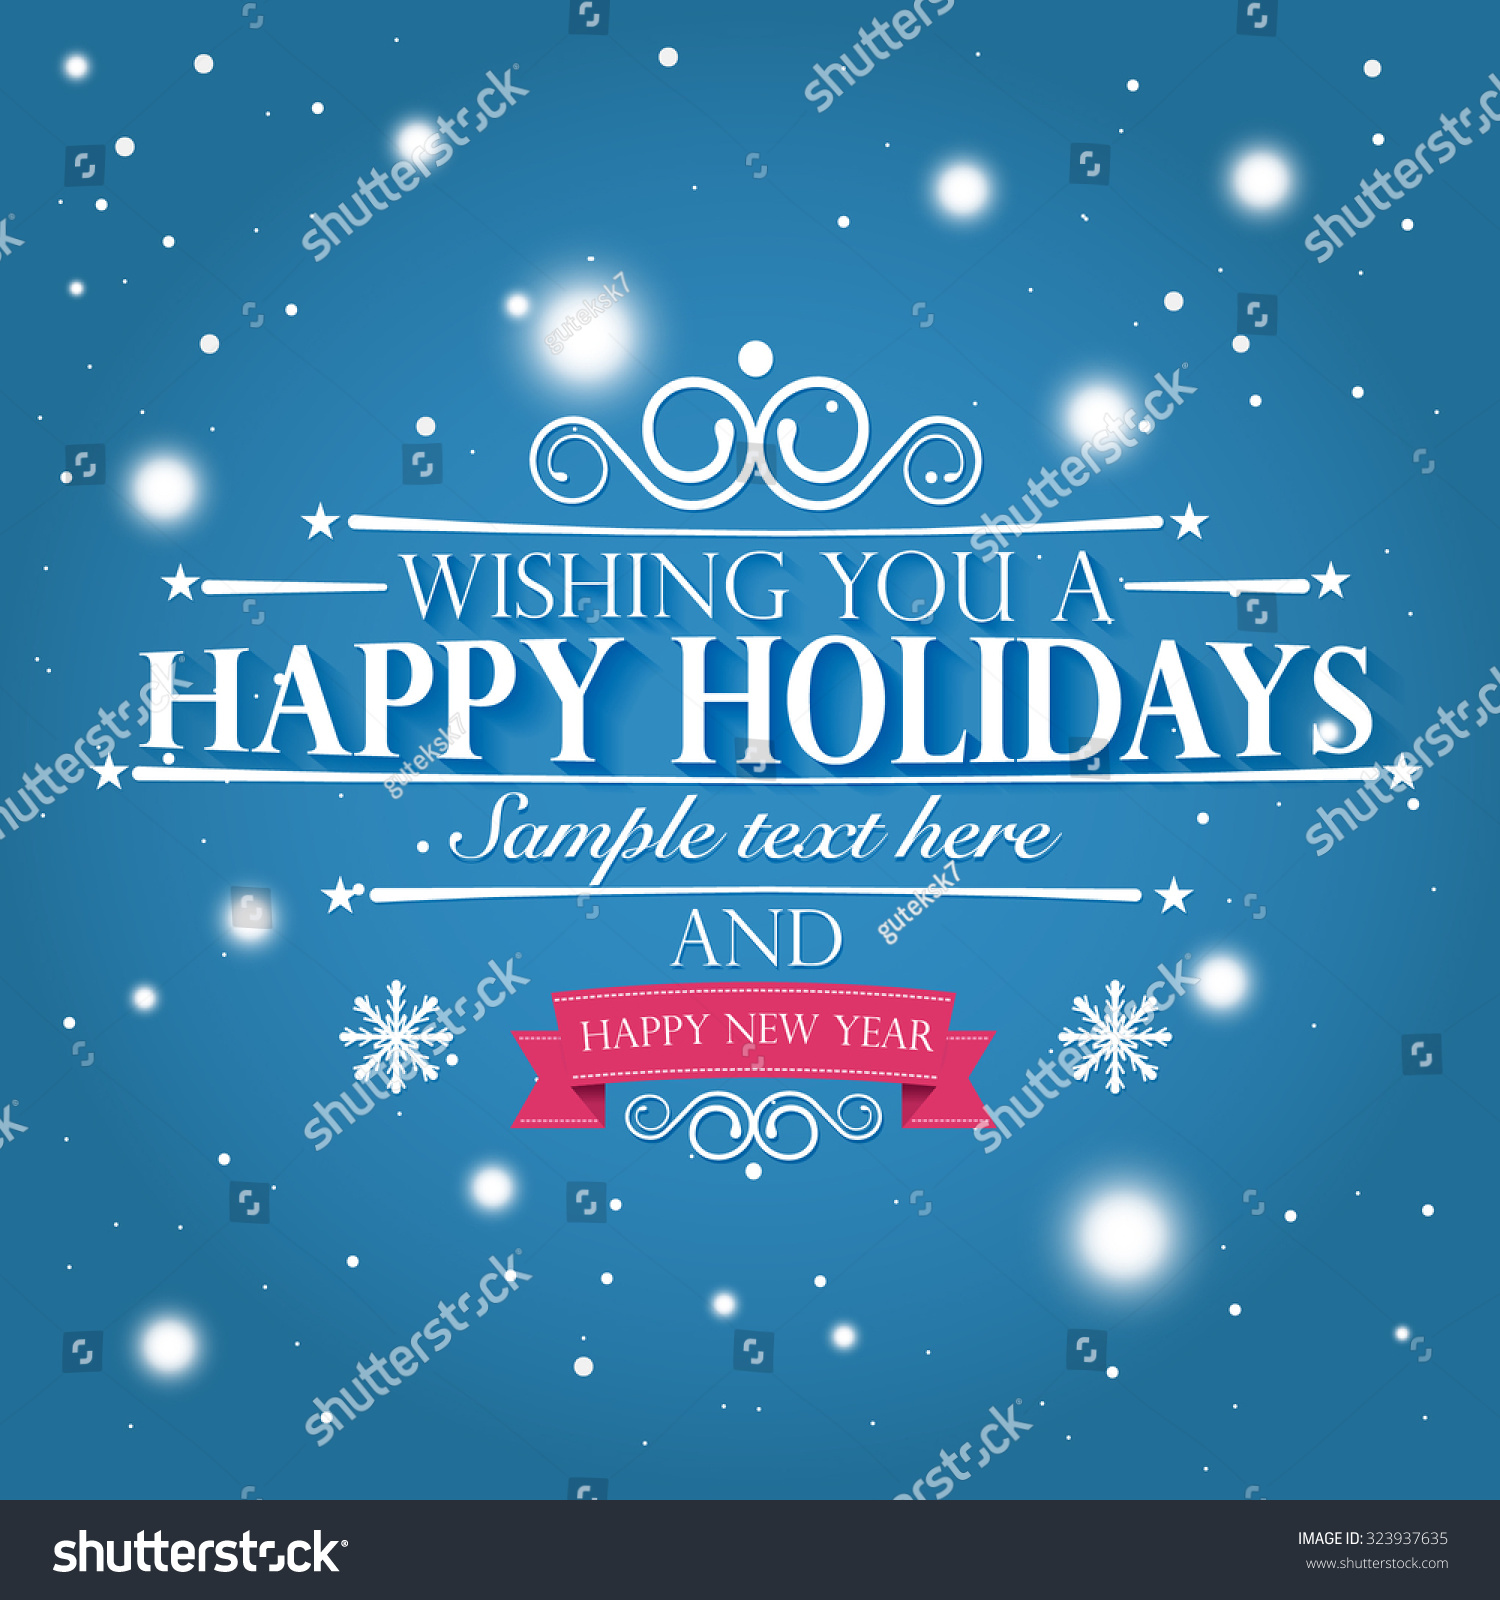 Happy Holidays Happy New Year Wishes Stock Vector Royalty Free